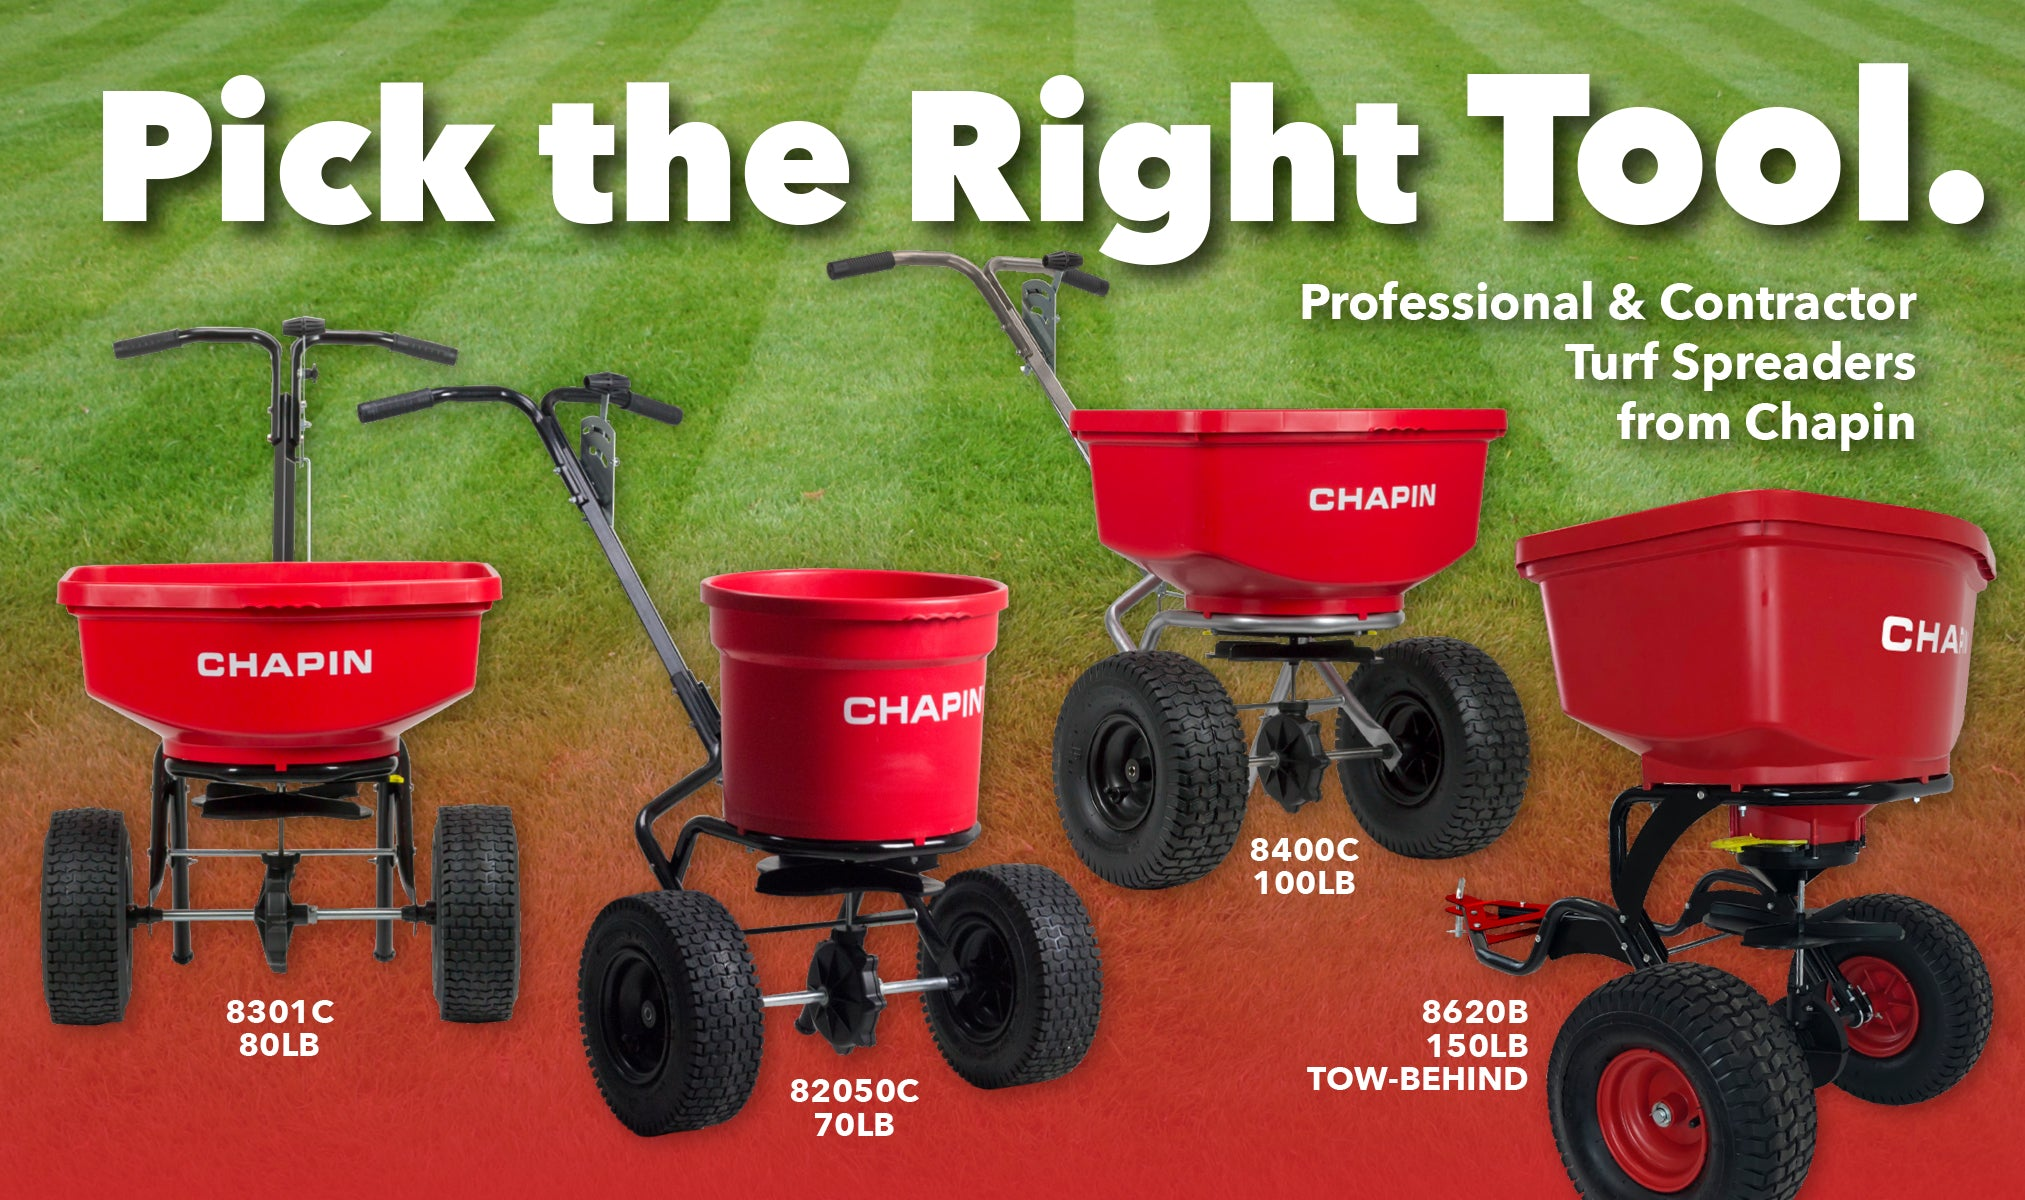 Pick the right tool. Chapin Professional and Contractor spreaders